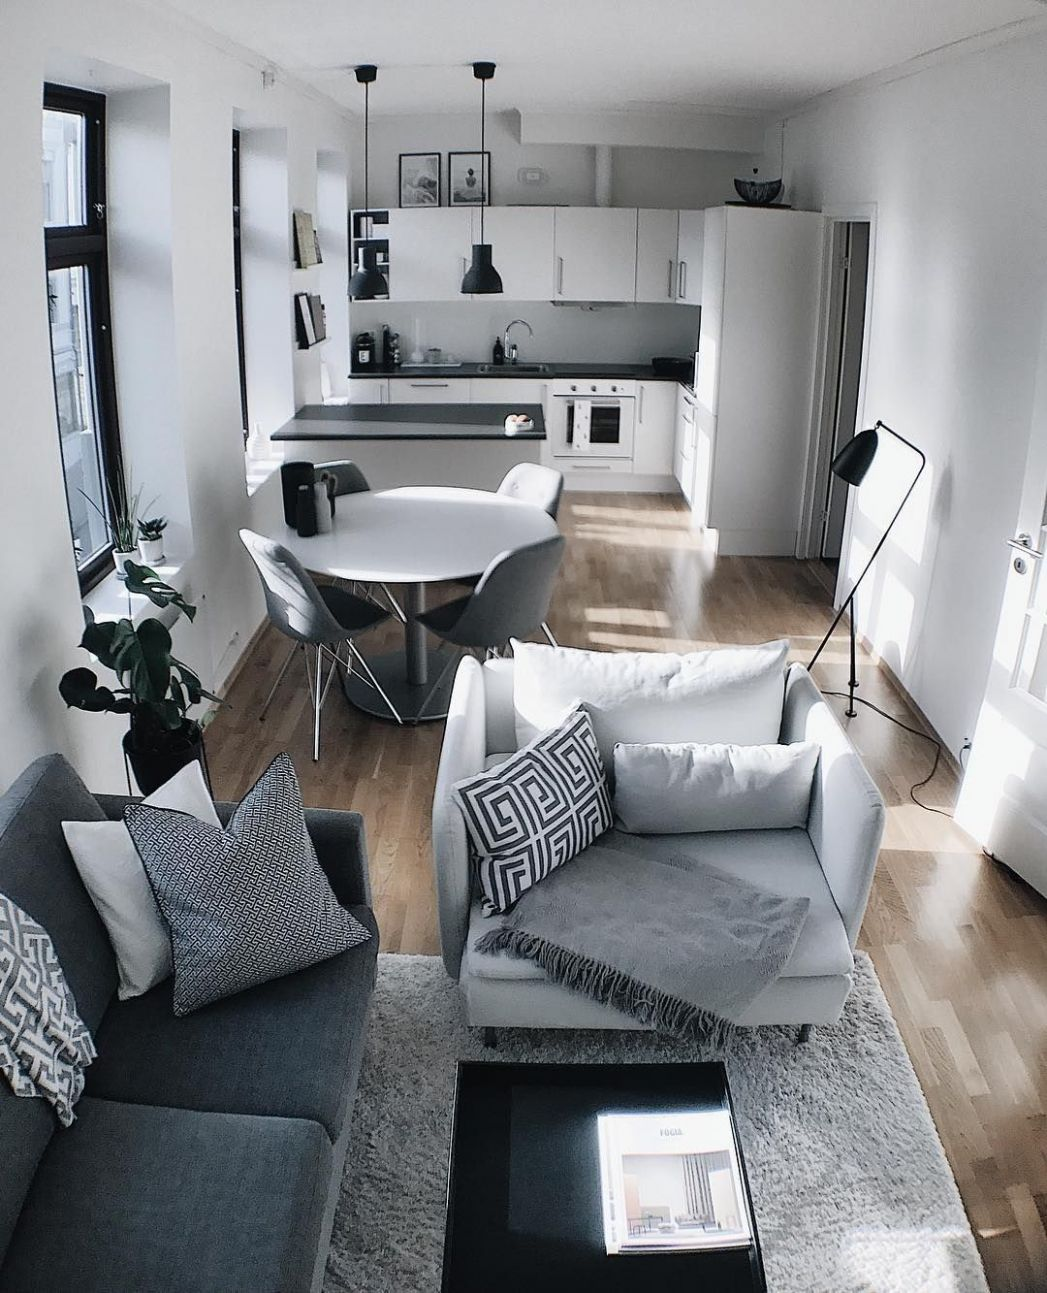 9 Apartment Decorating Ideas On a Budget For a Beautiful Space ...